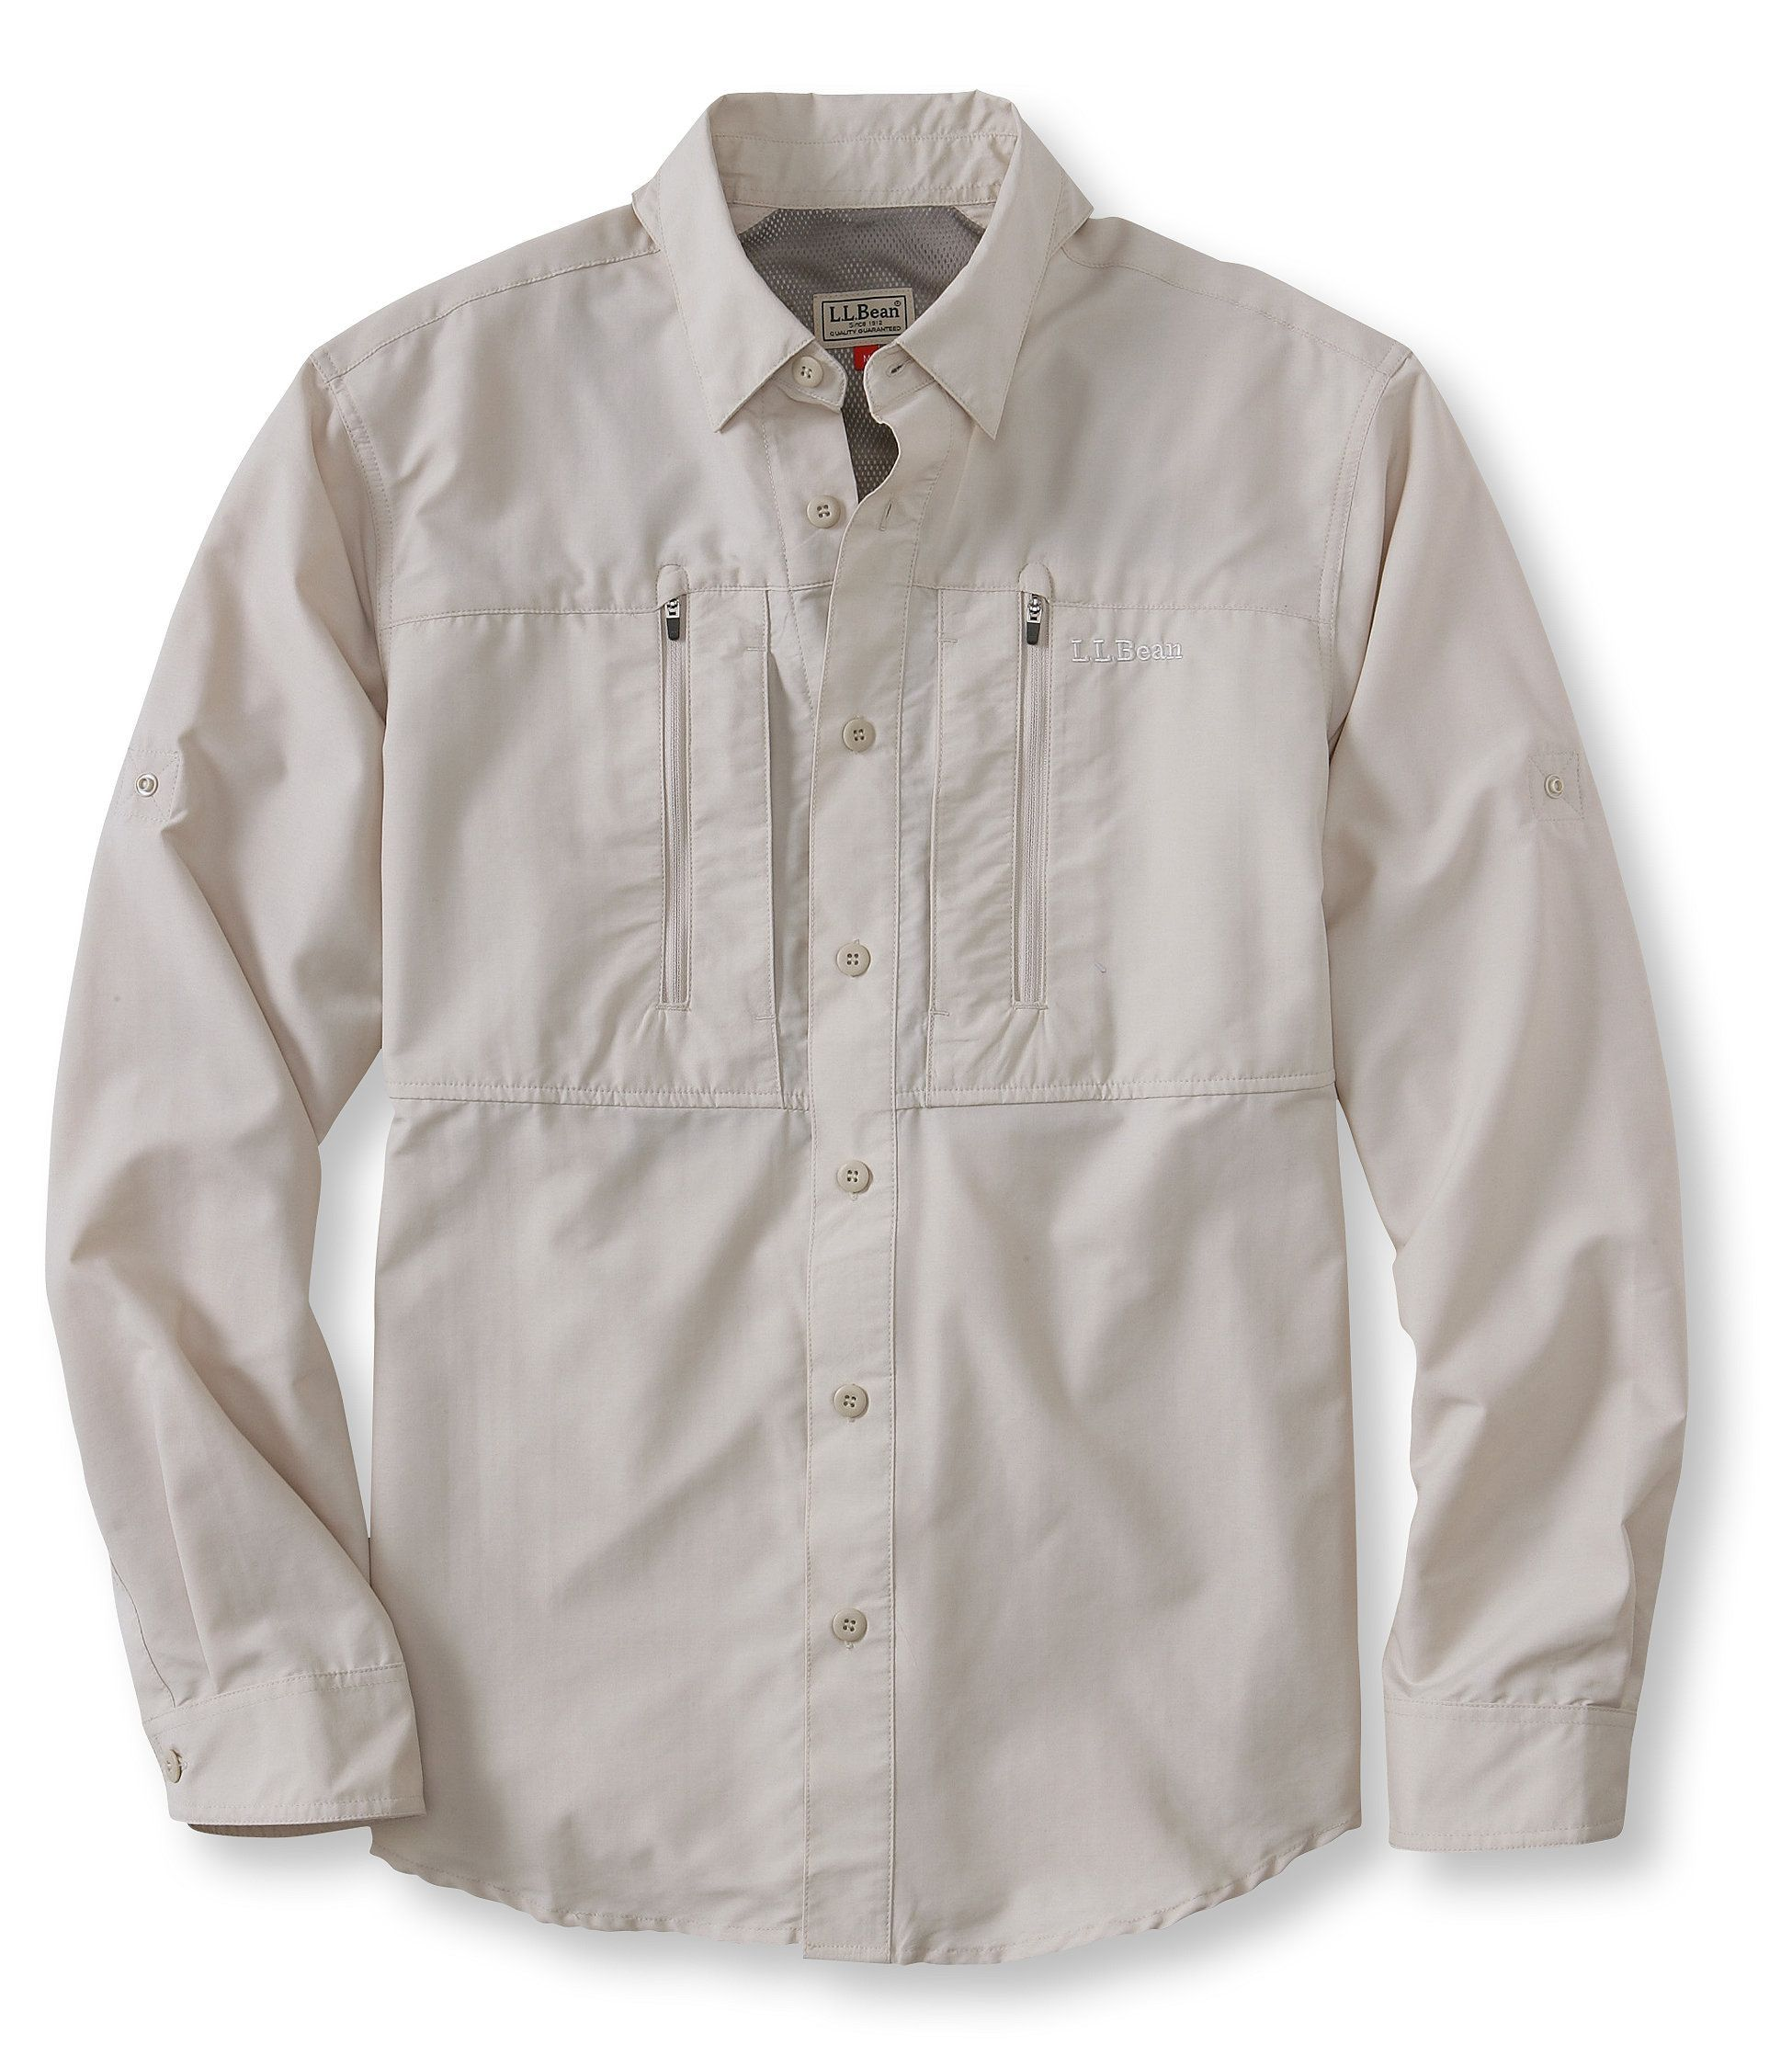 4e8c0a309d5d Men's No Fly Zone Shirt Hunting Clothes, Hunting Gear, Roll Up Sleeves,  Fishing